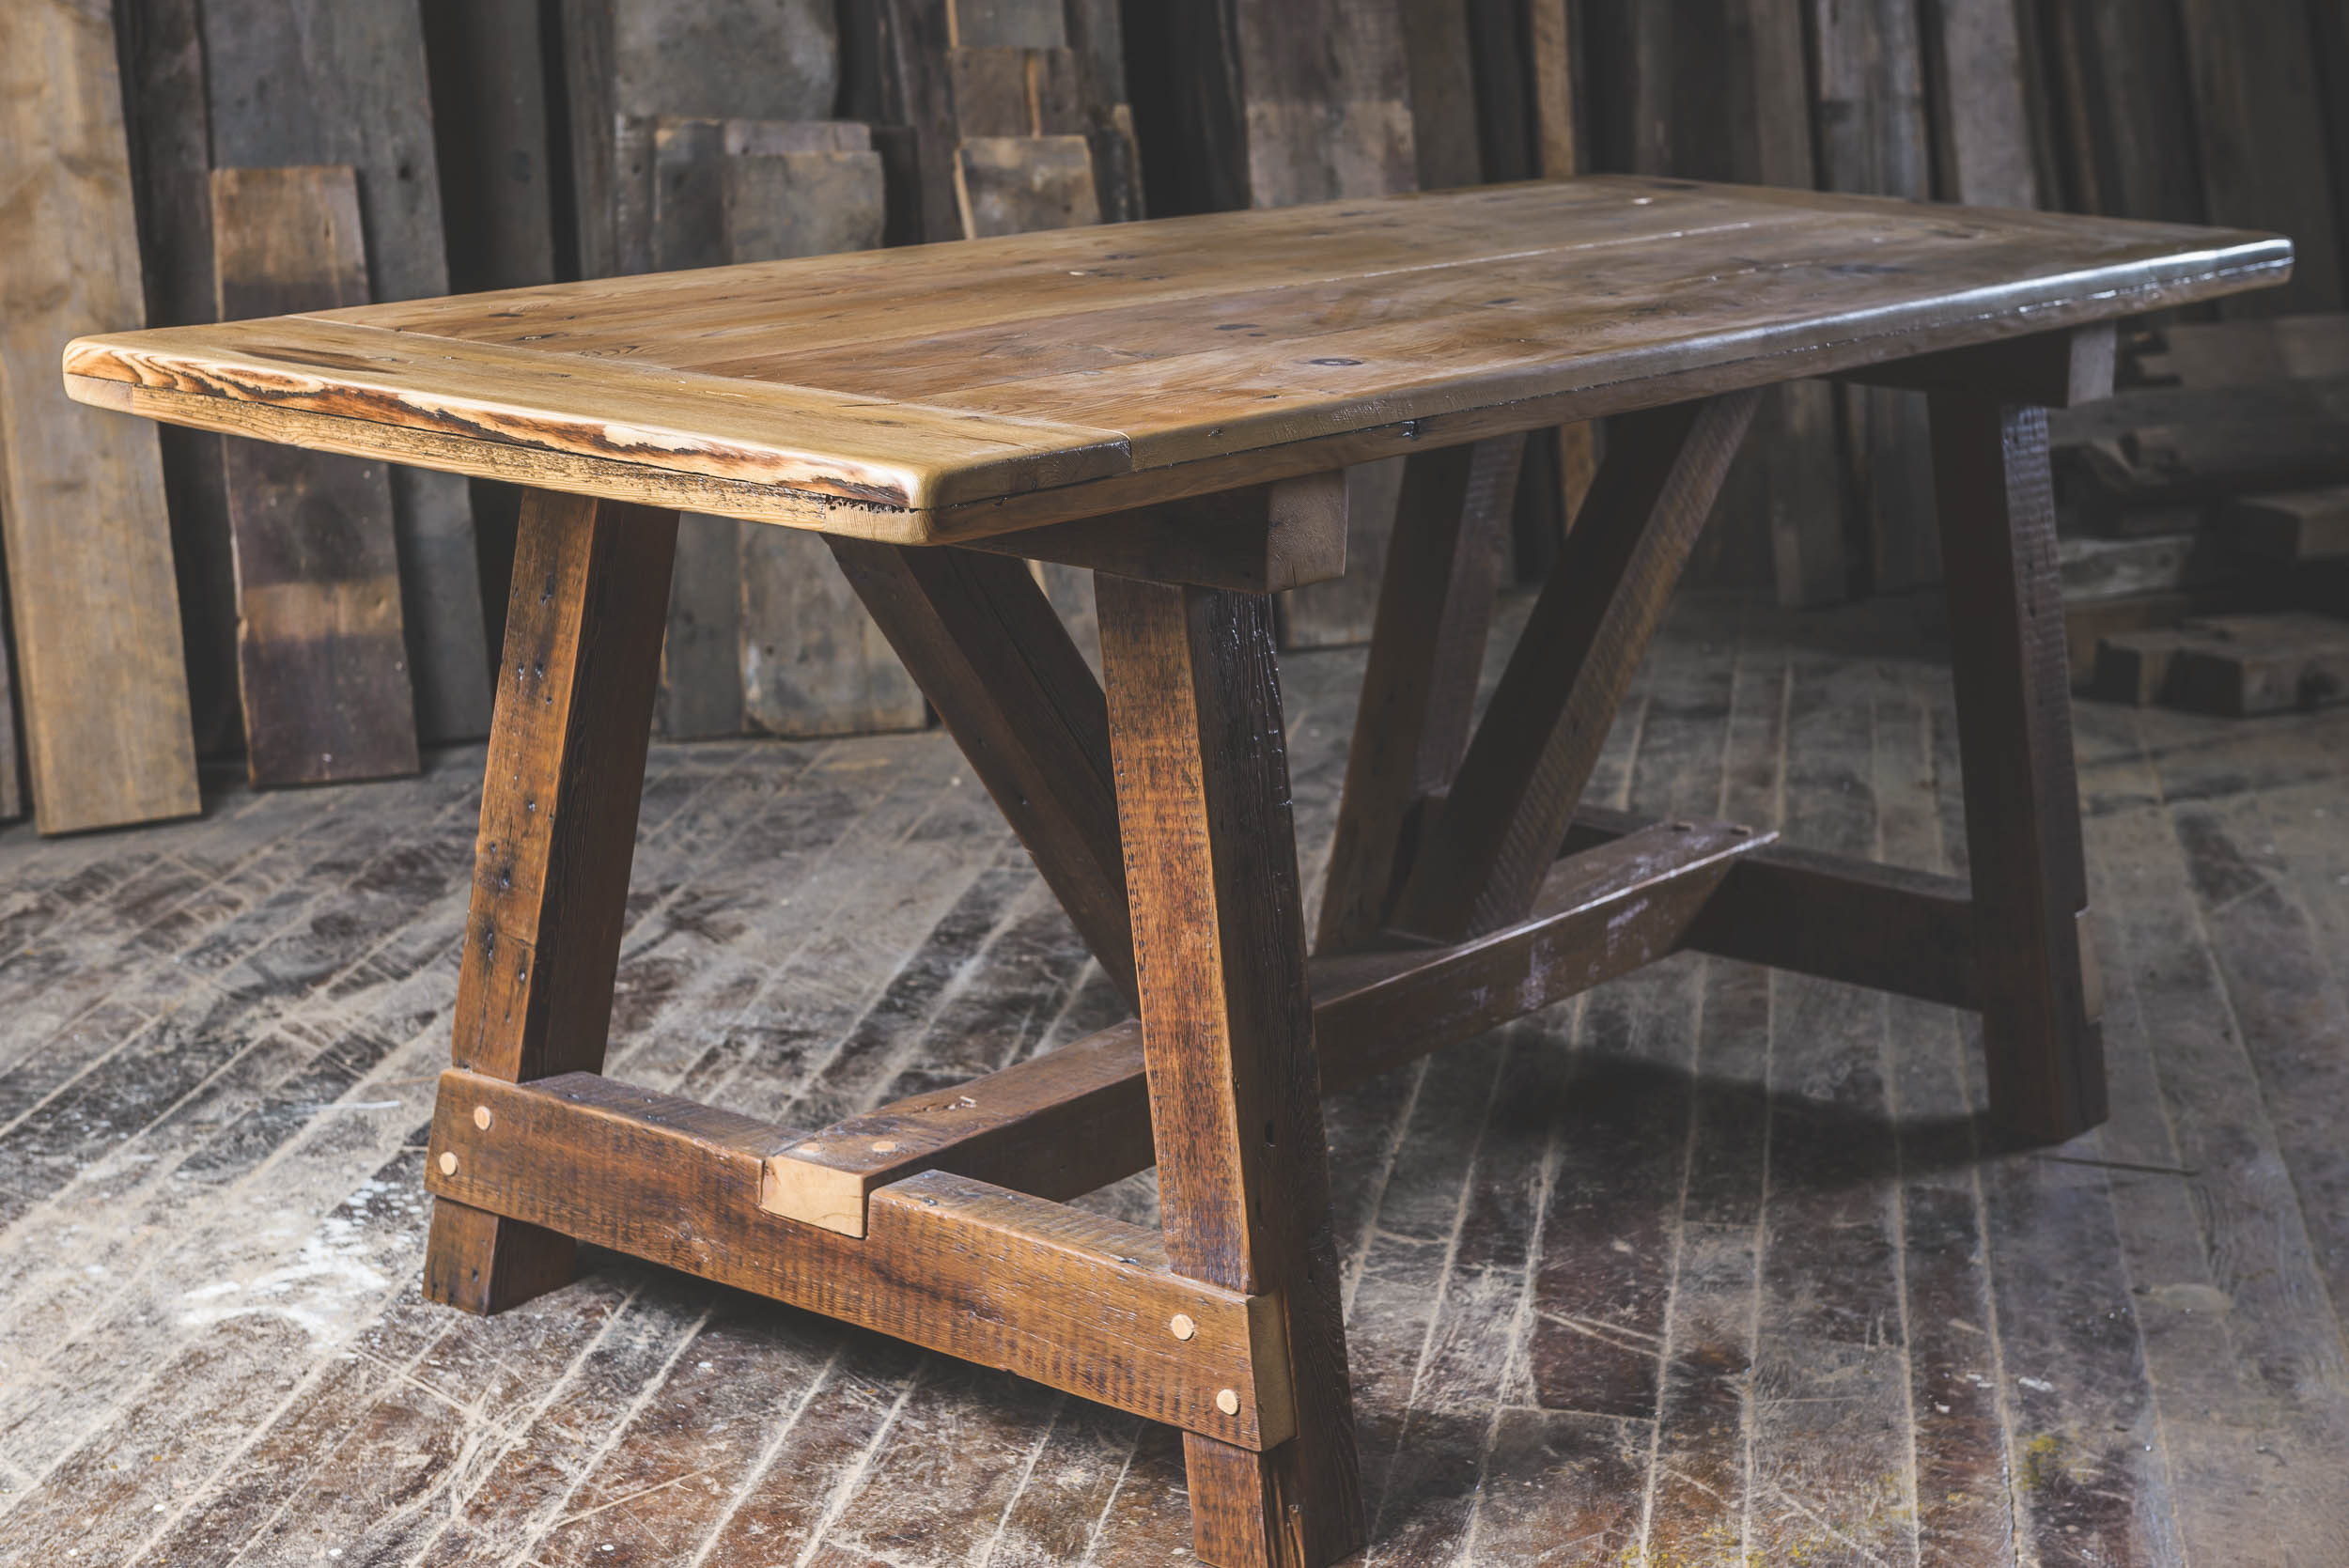 Arrowhead_Farm_Barn_Homestead_Table_Arcart_Furniture-2.jpg